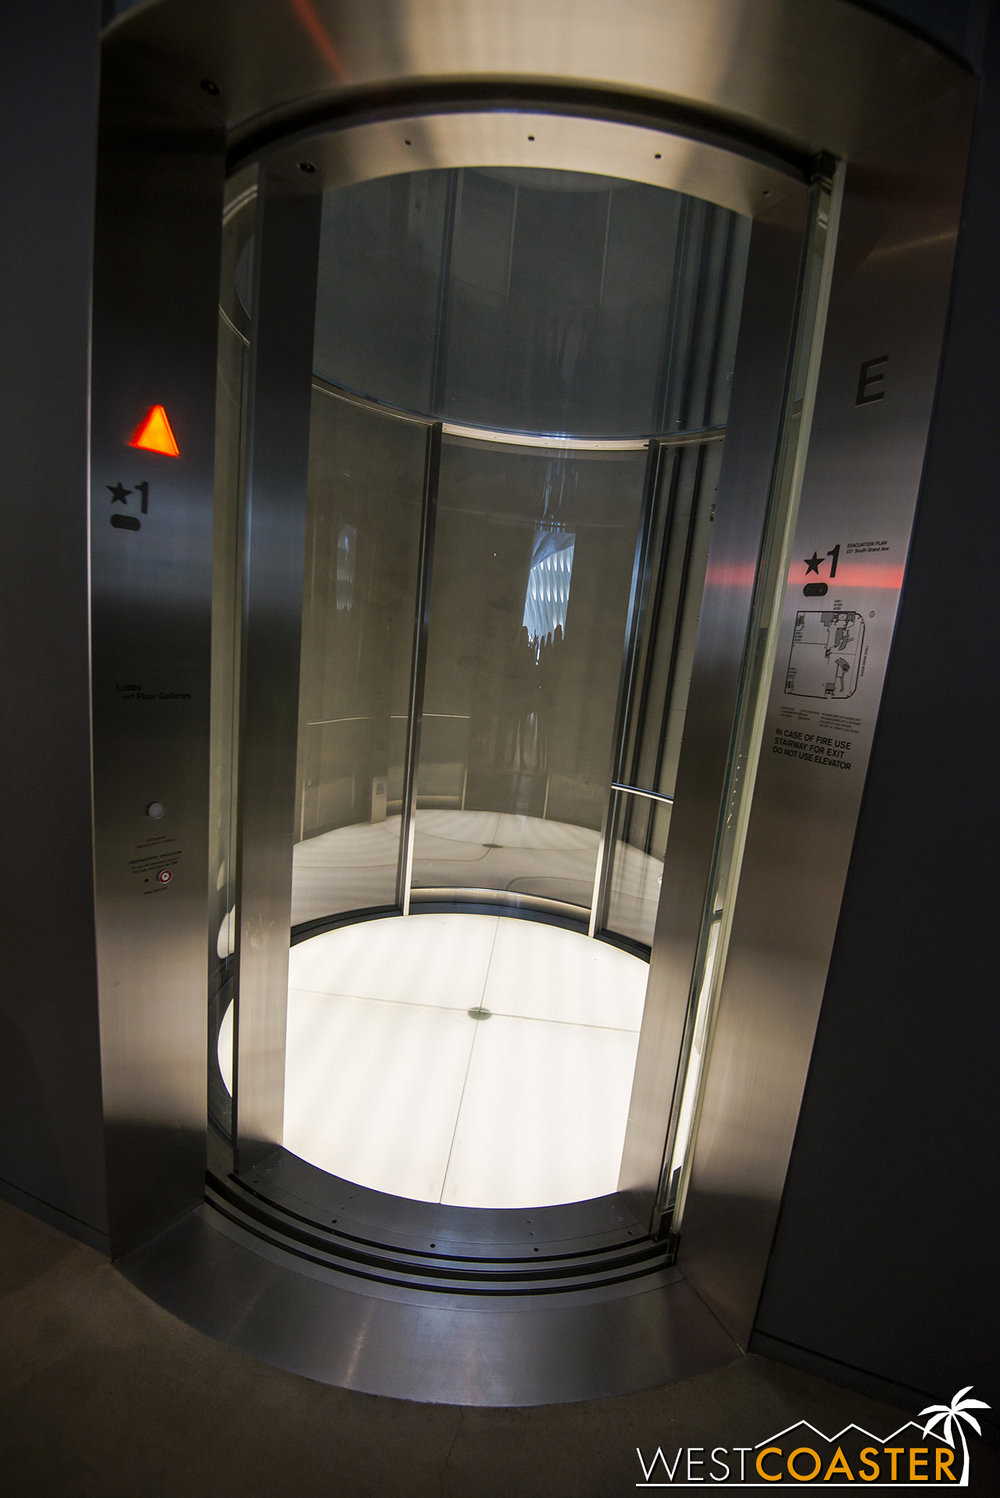 The sleek, cylindrical glass elevator.